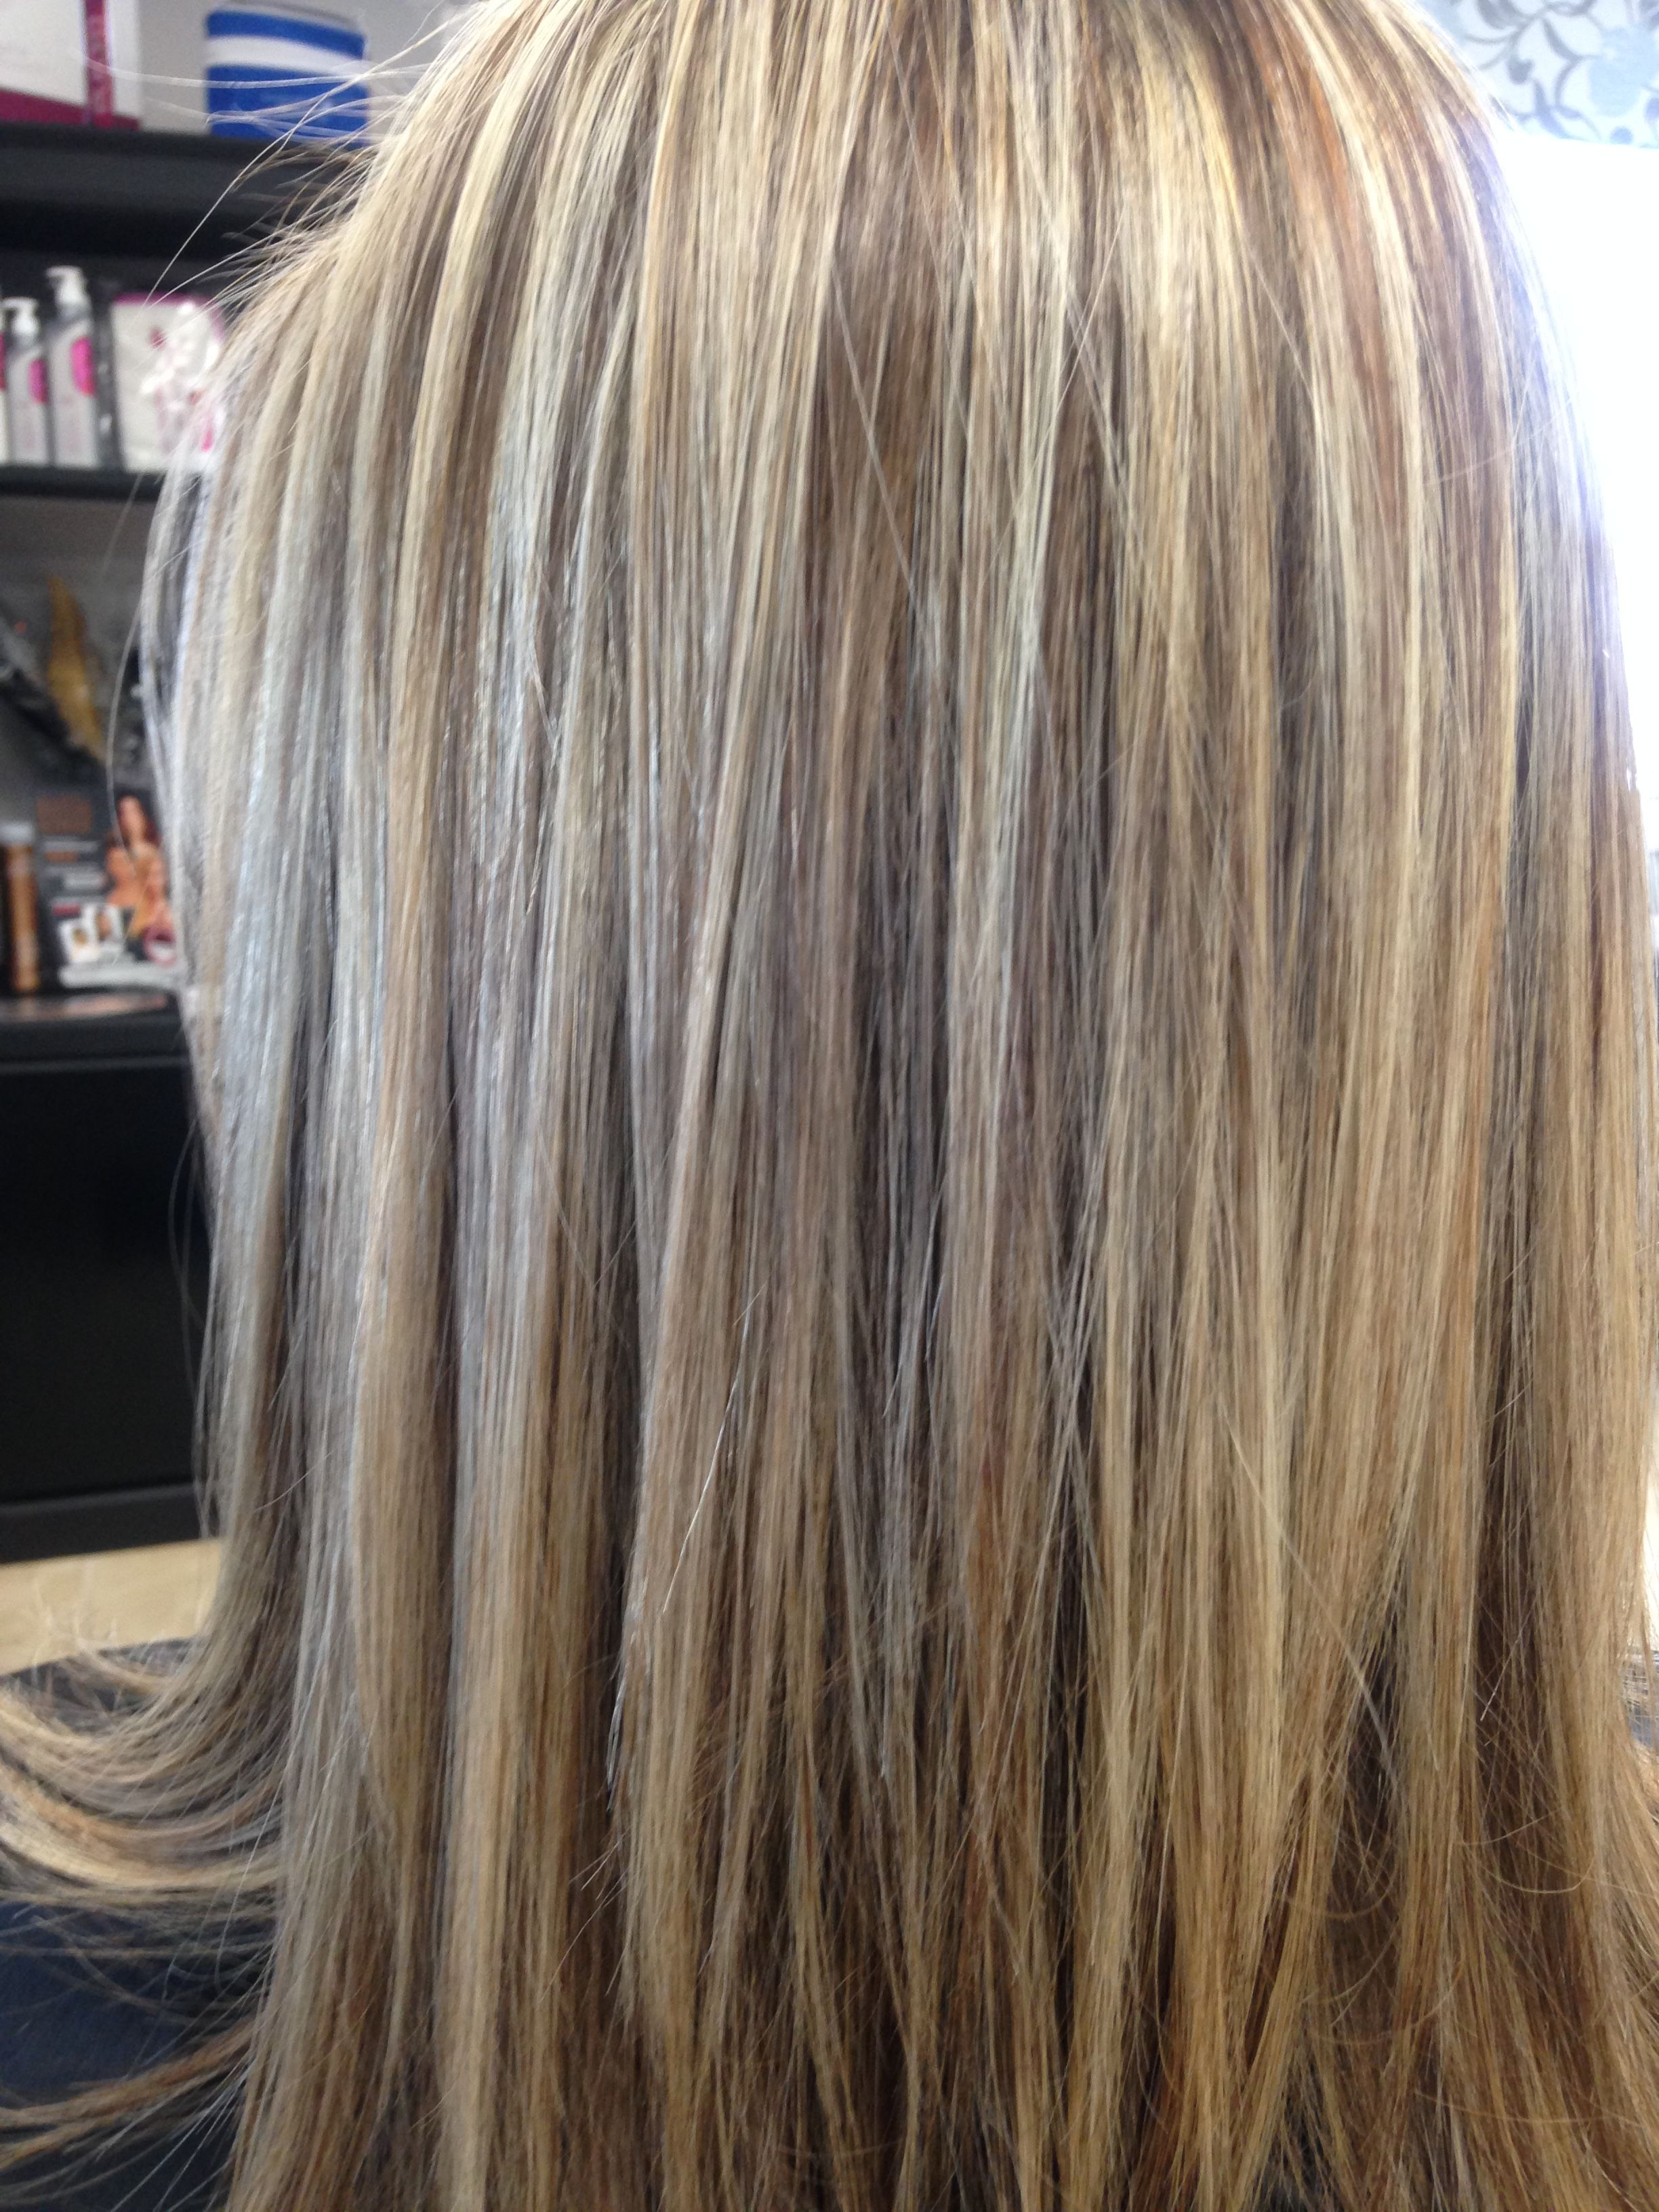 highlights and lowlights hair411